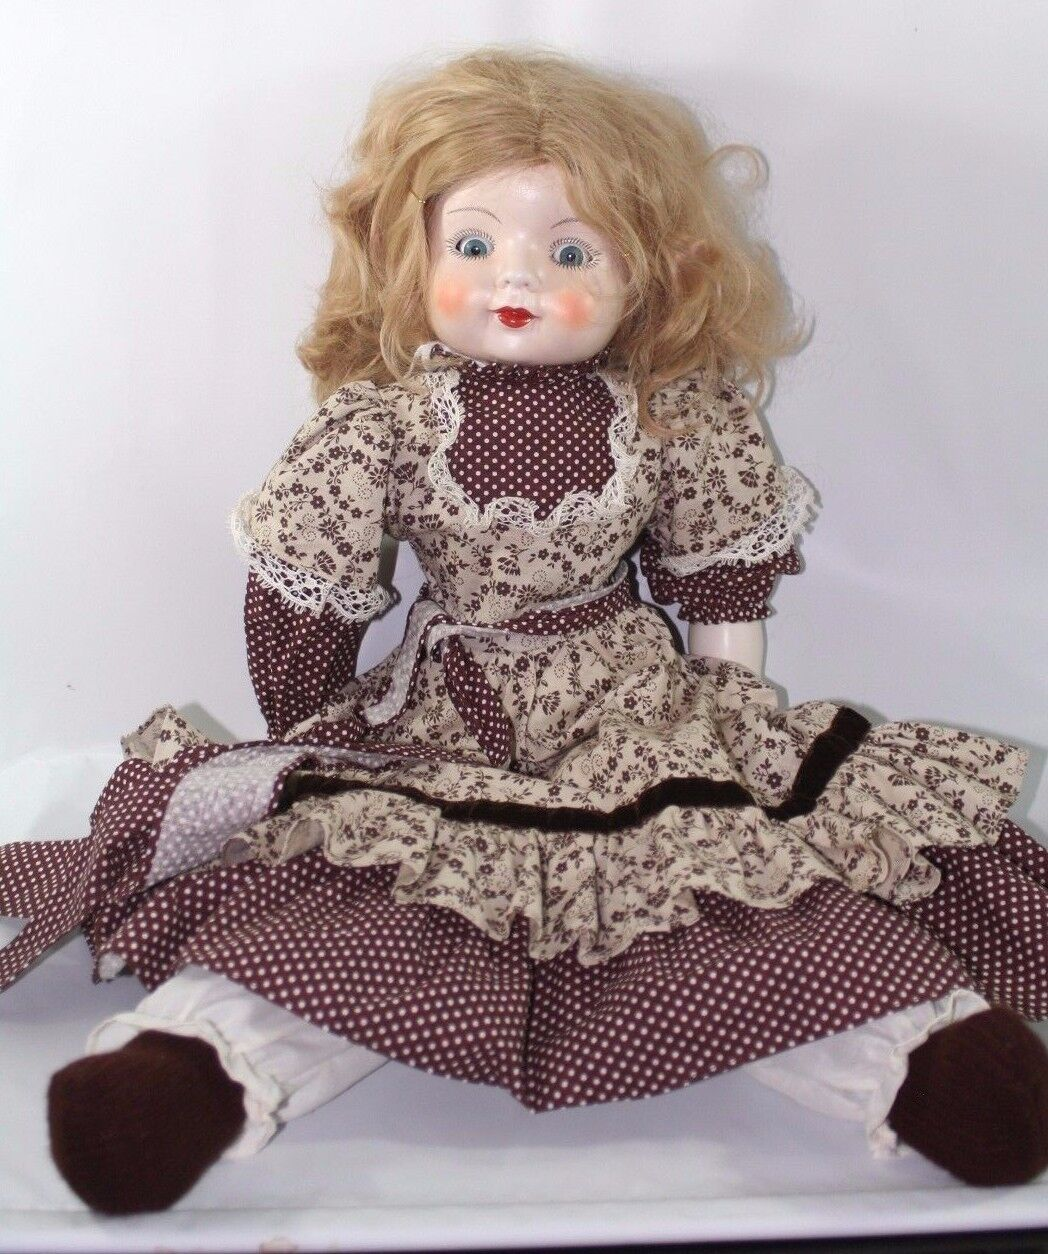 Vintage 26  Doll Porcelain Head & Arms Movable Eyes Cloth Body and Legs Blonde